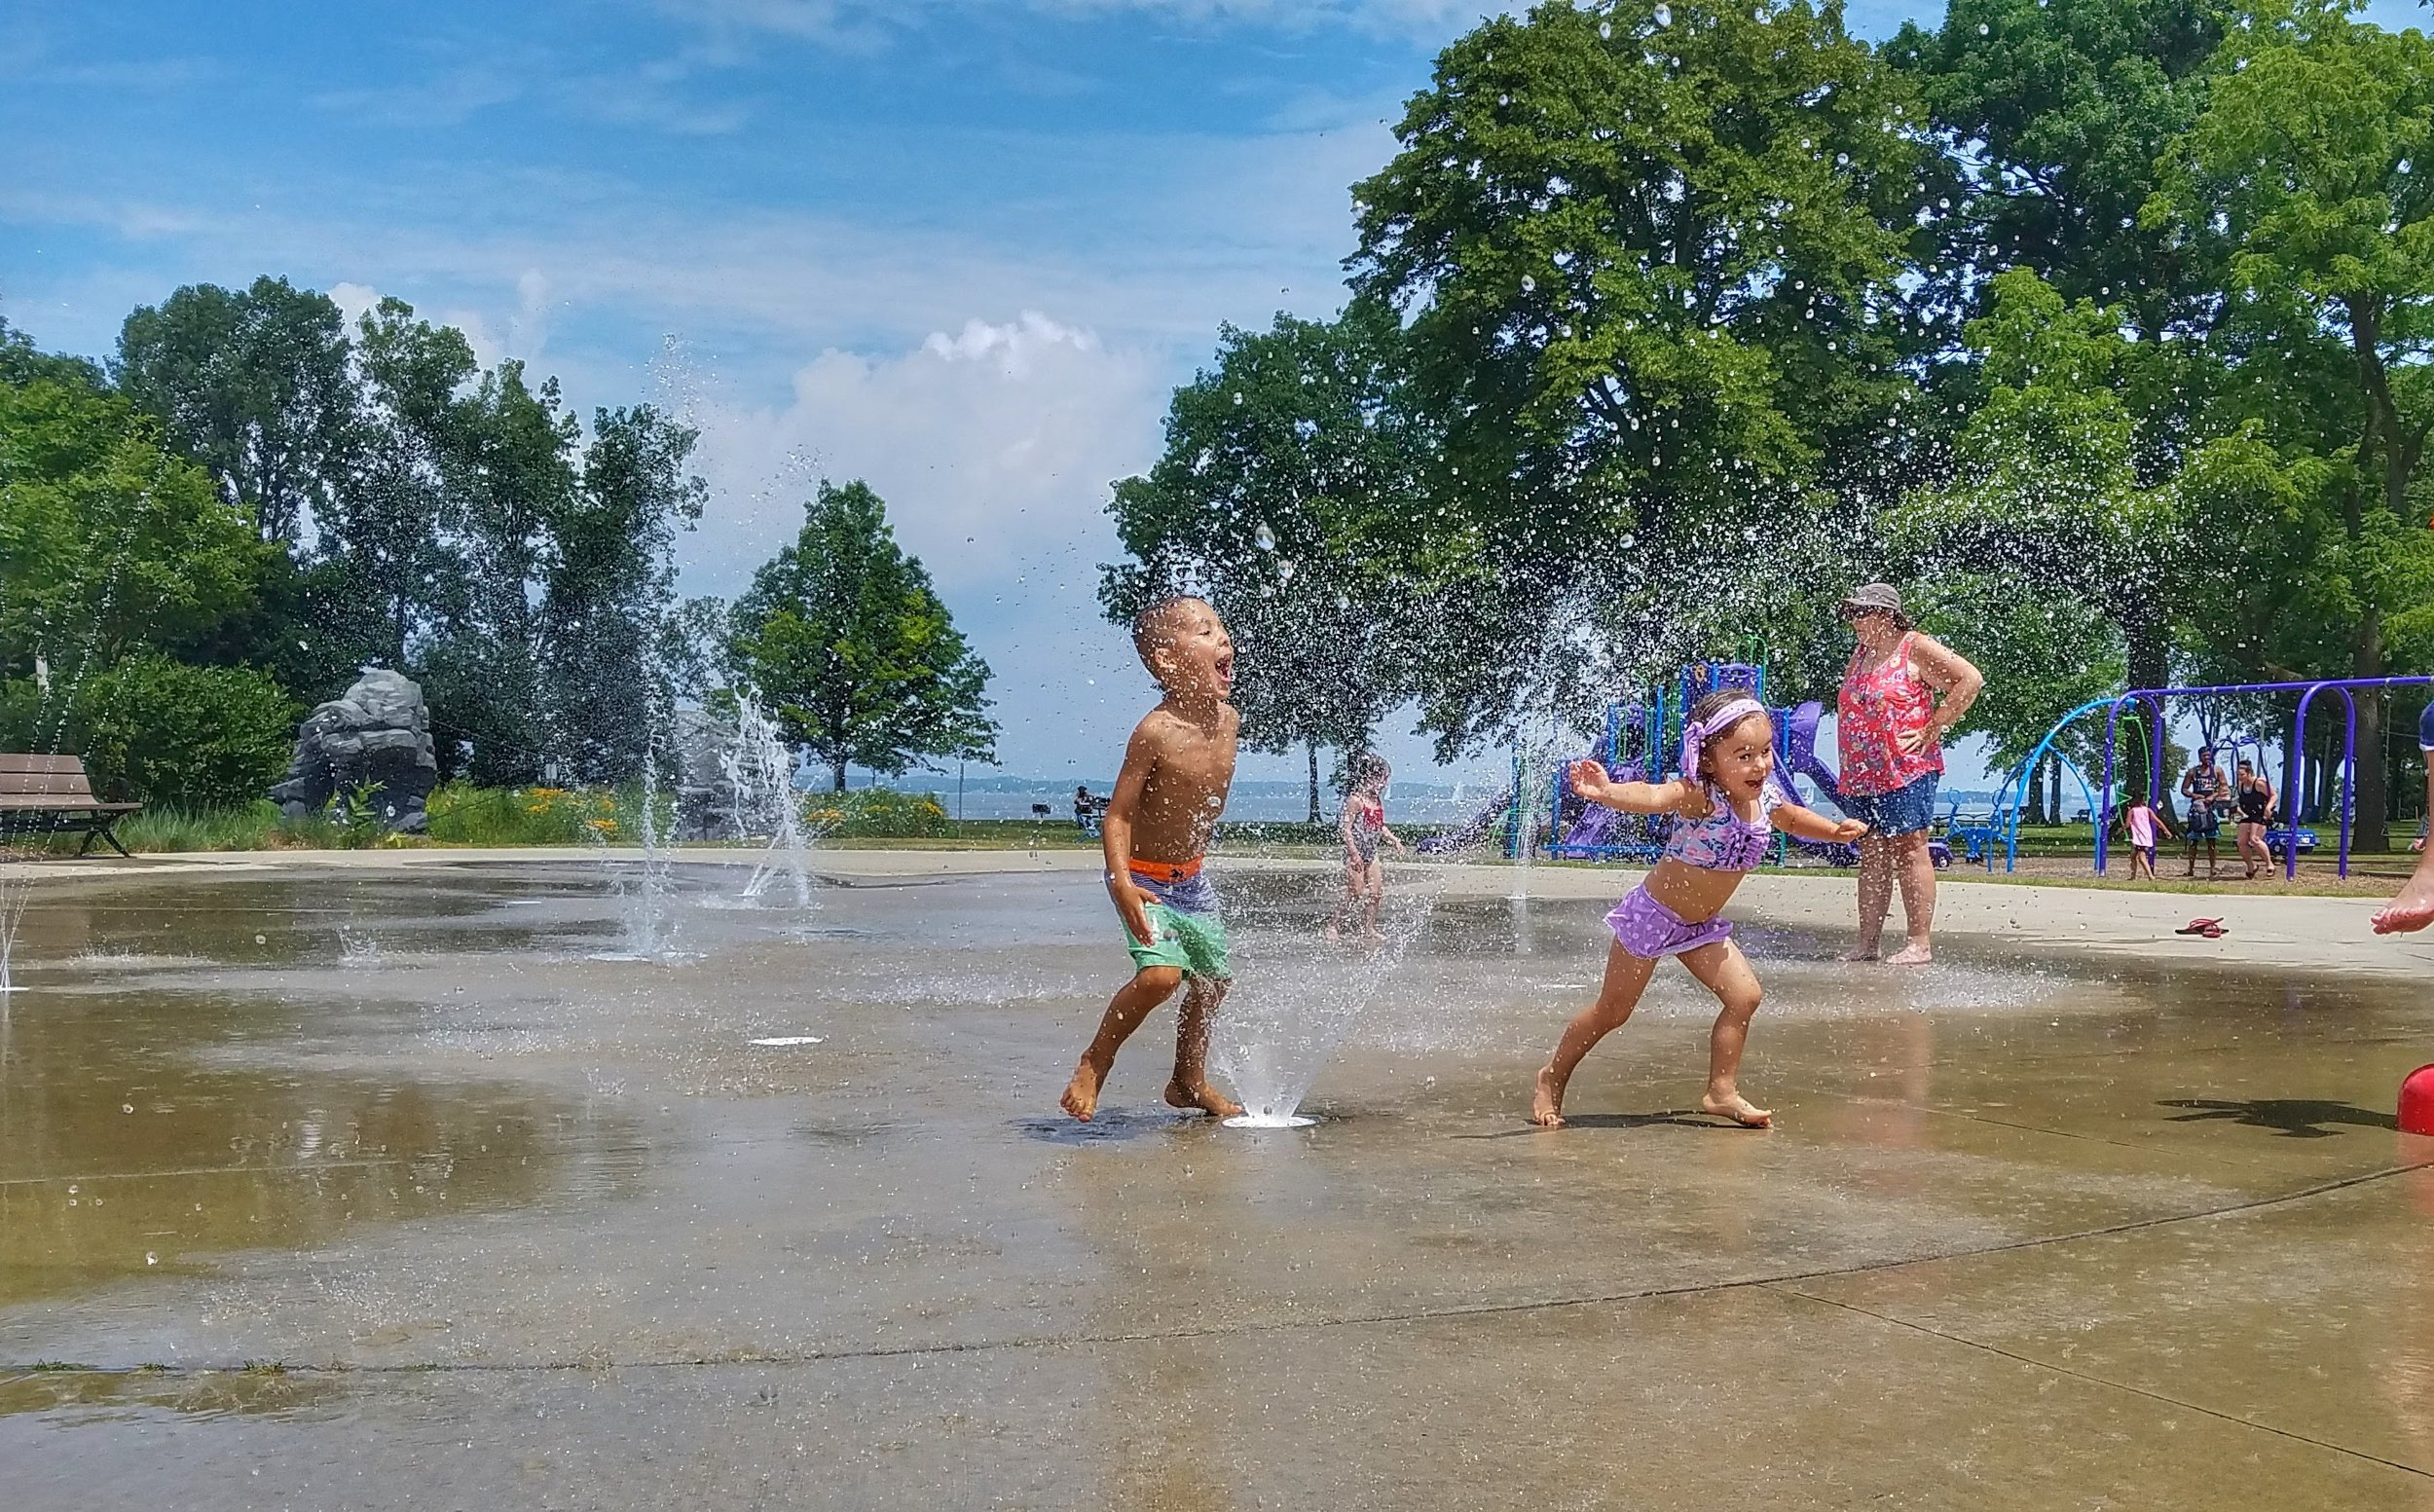 Reid and Penelope clearly enjoying the Splash Pad